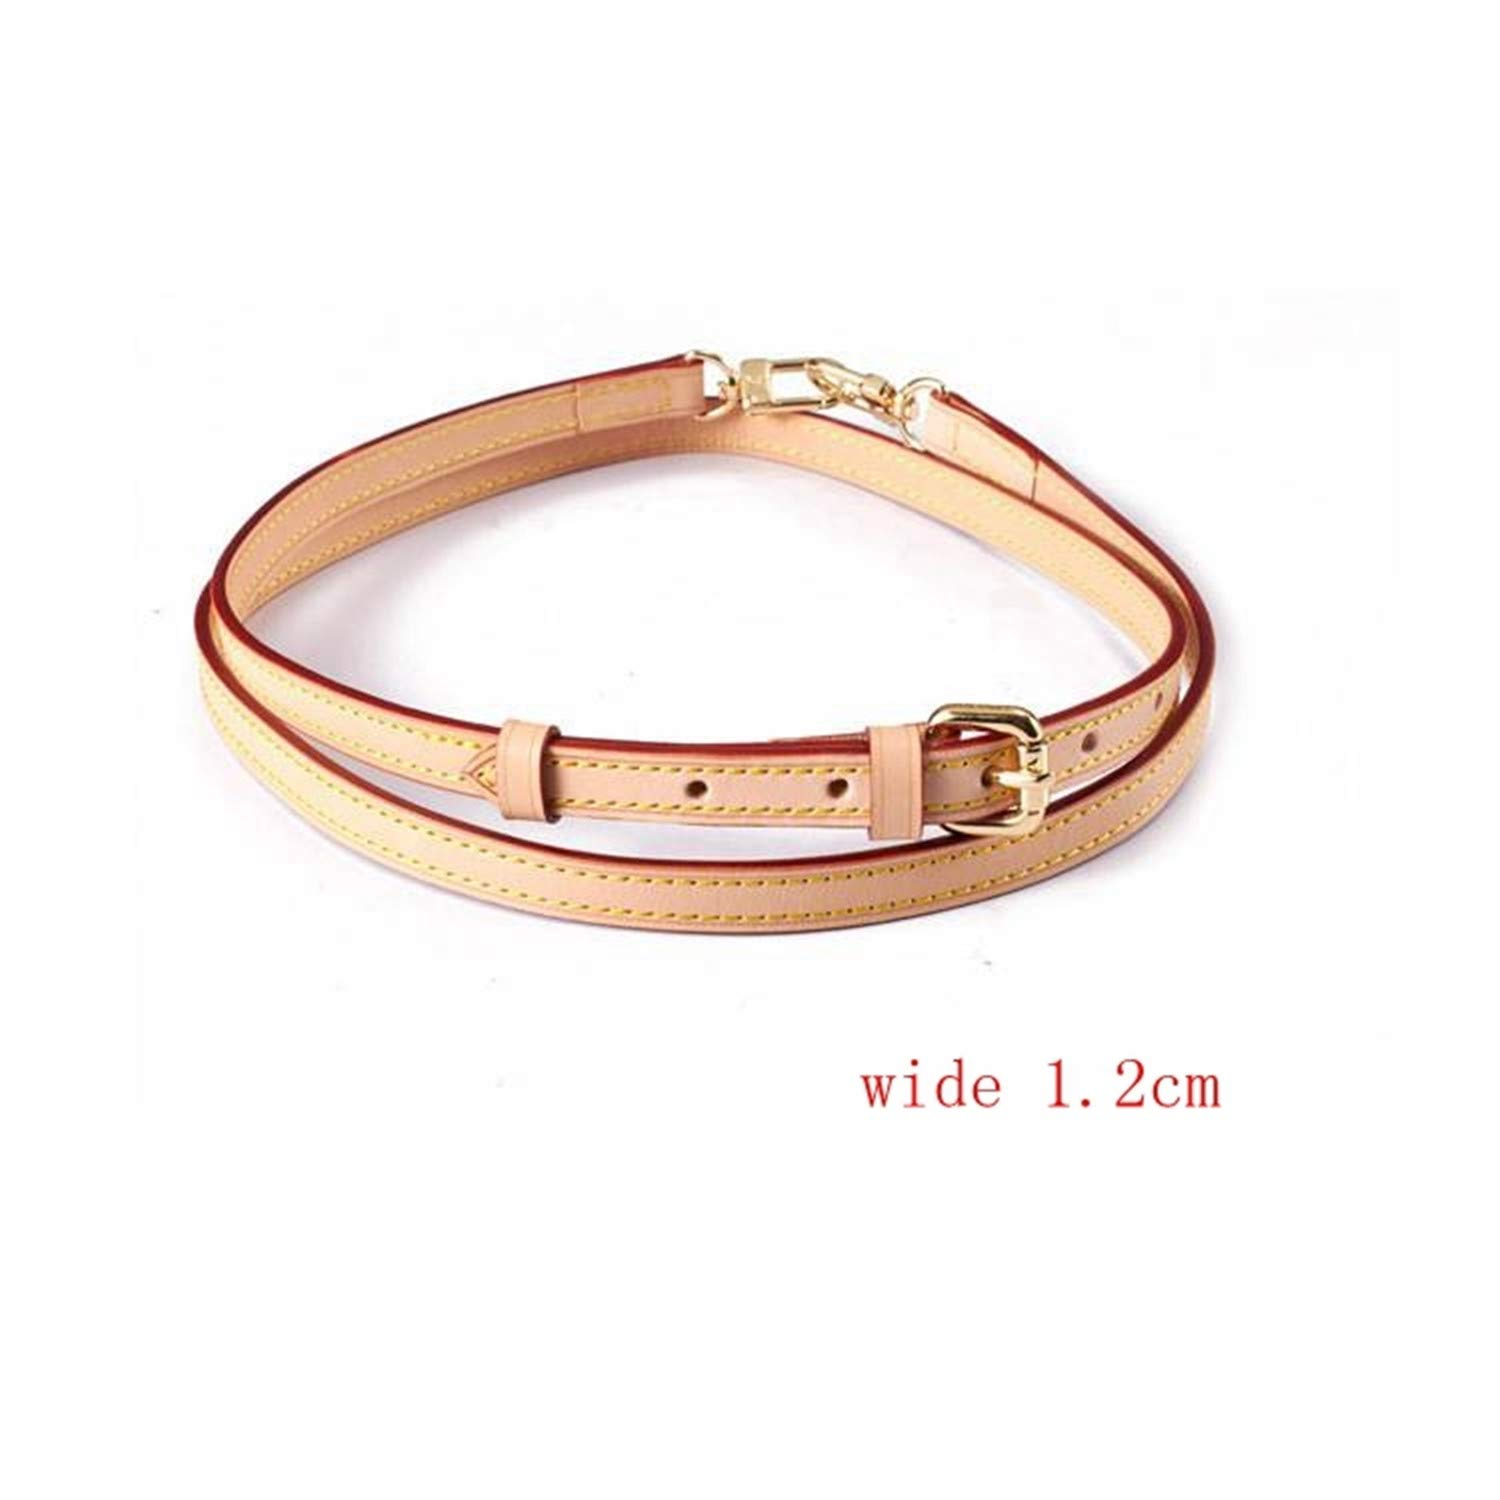 Angelat Strap Leather Handbag Straps Shouder Bag Belts Really Oxidation Cow Leather Accessory Bags Parts,1.5Cm Wide,Onesize